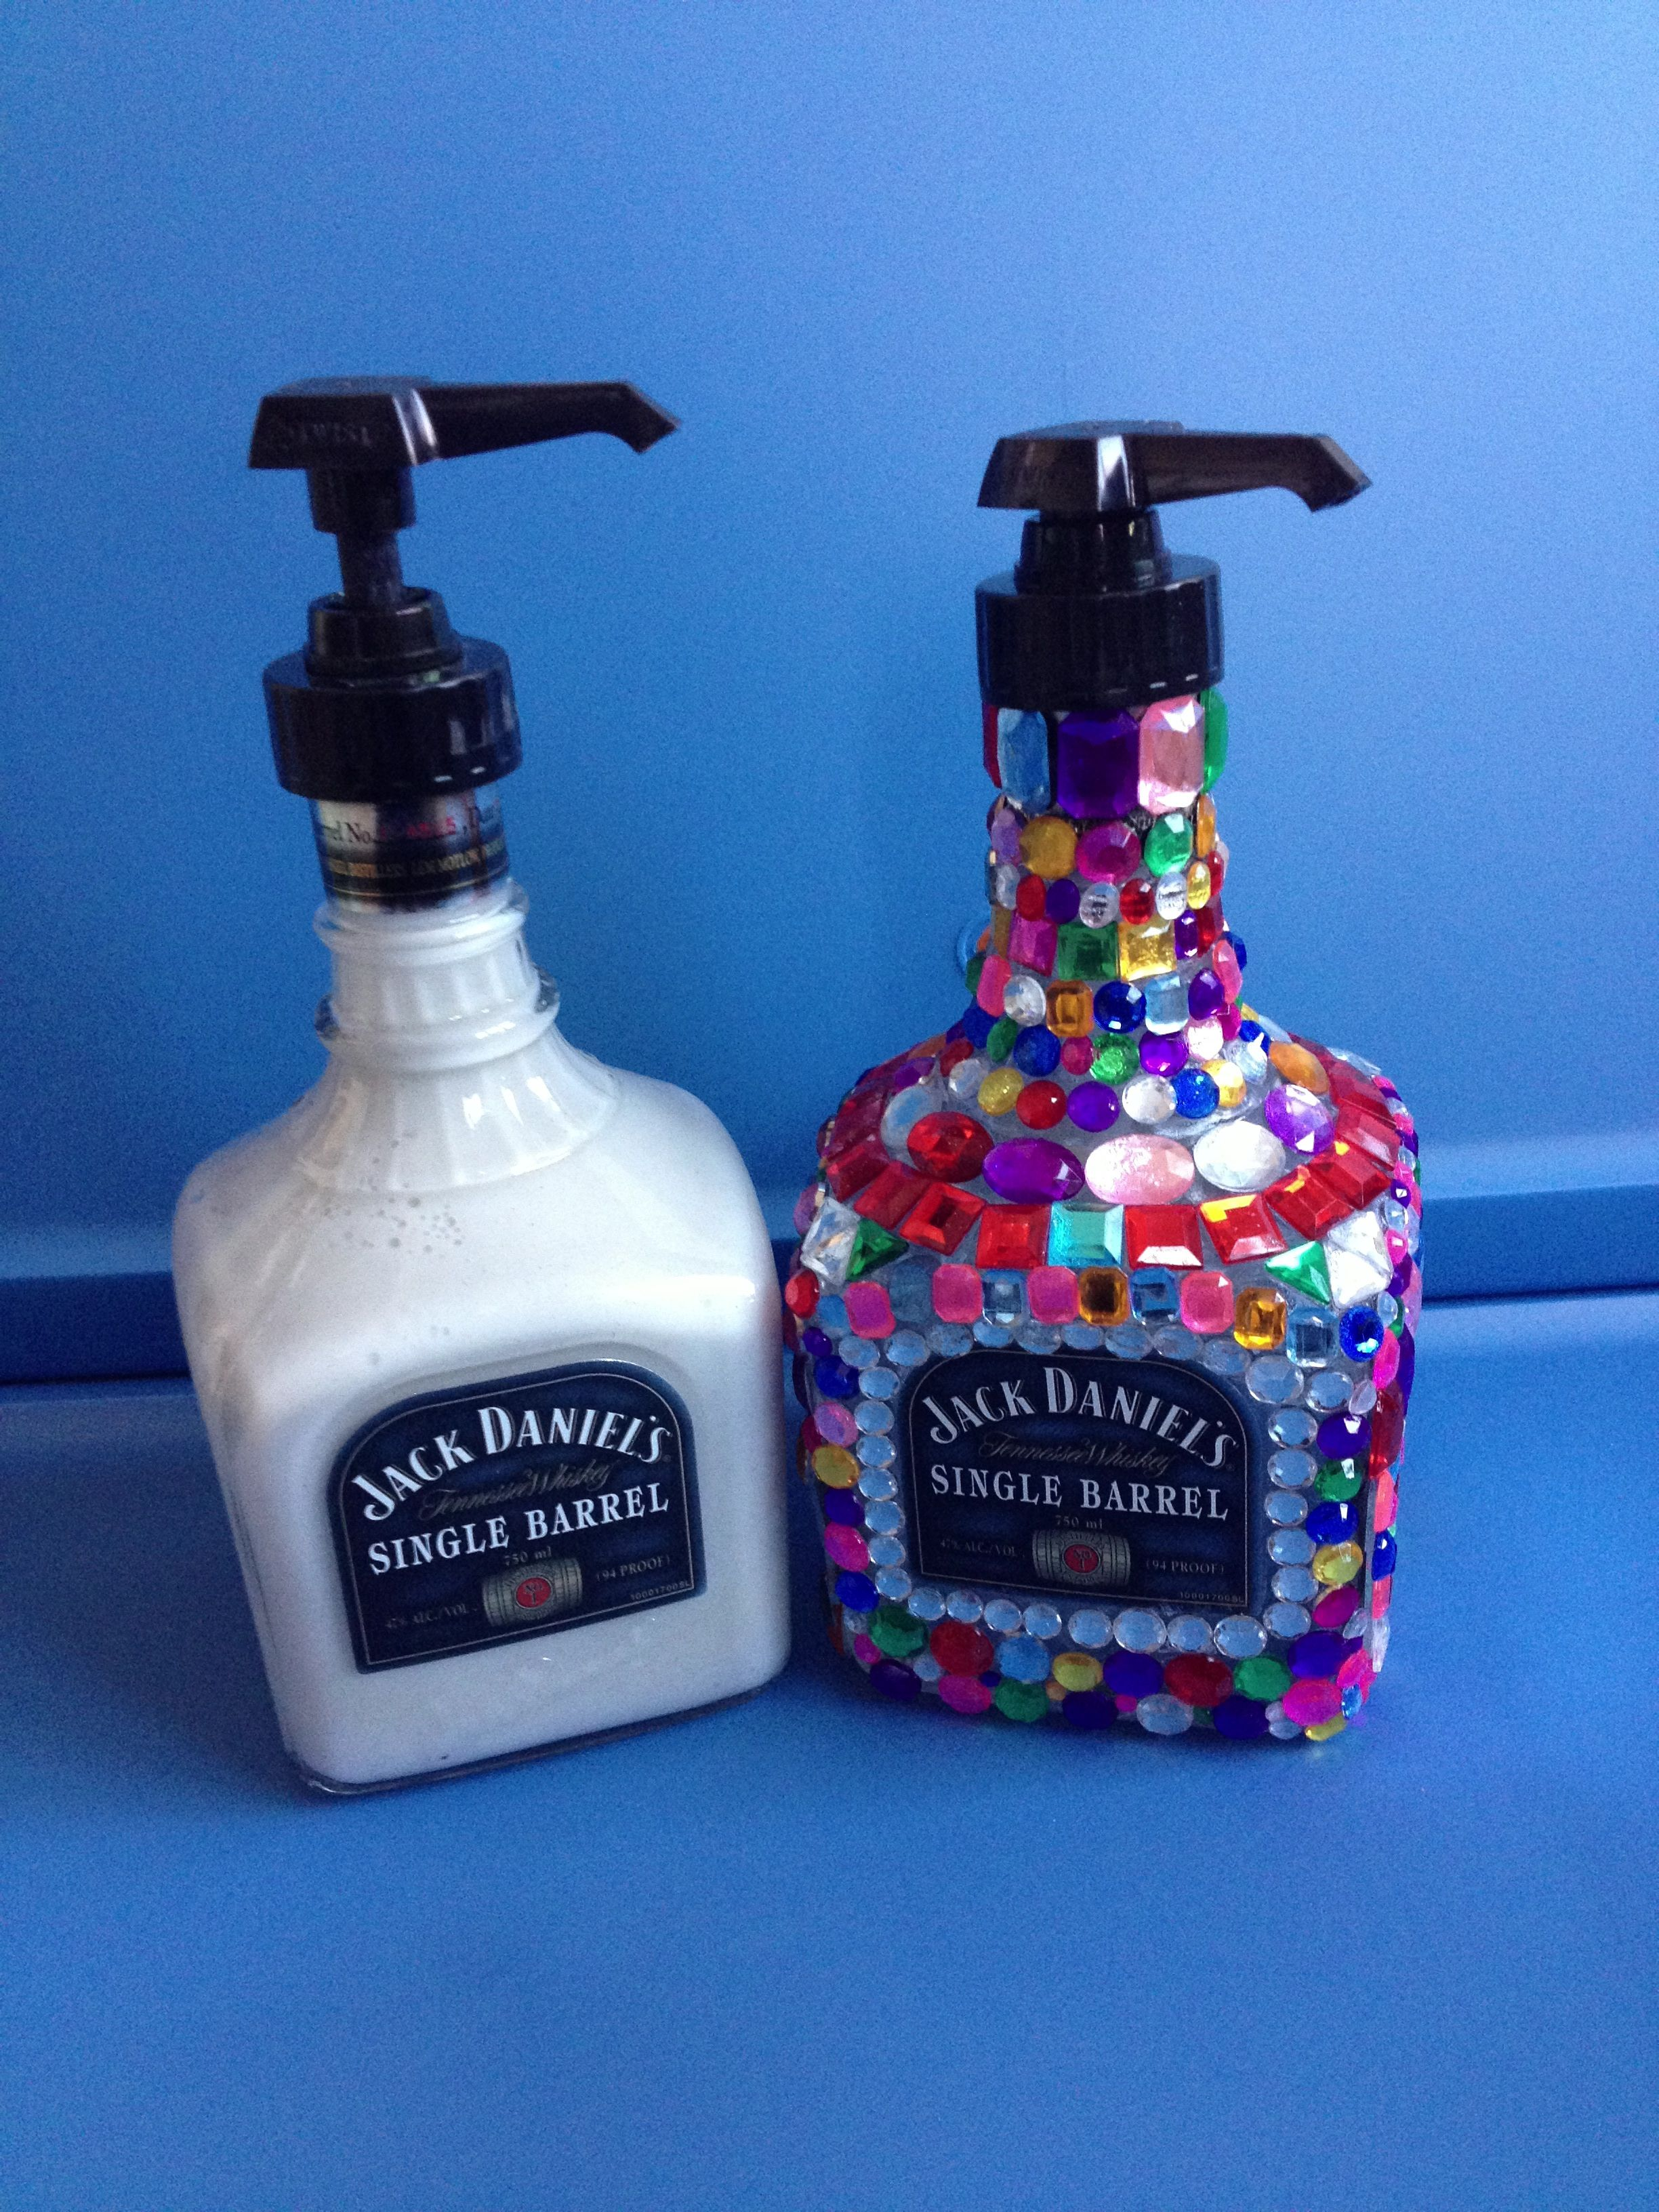 Hand Soap Bottle Holder Diy Alcohol Bottle Into A Soap Dispenser Stuffff